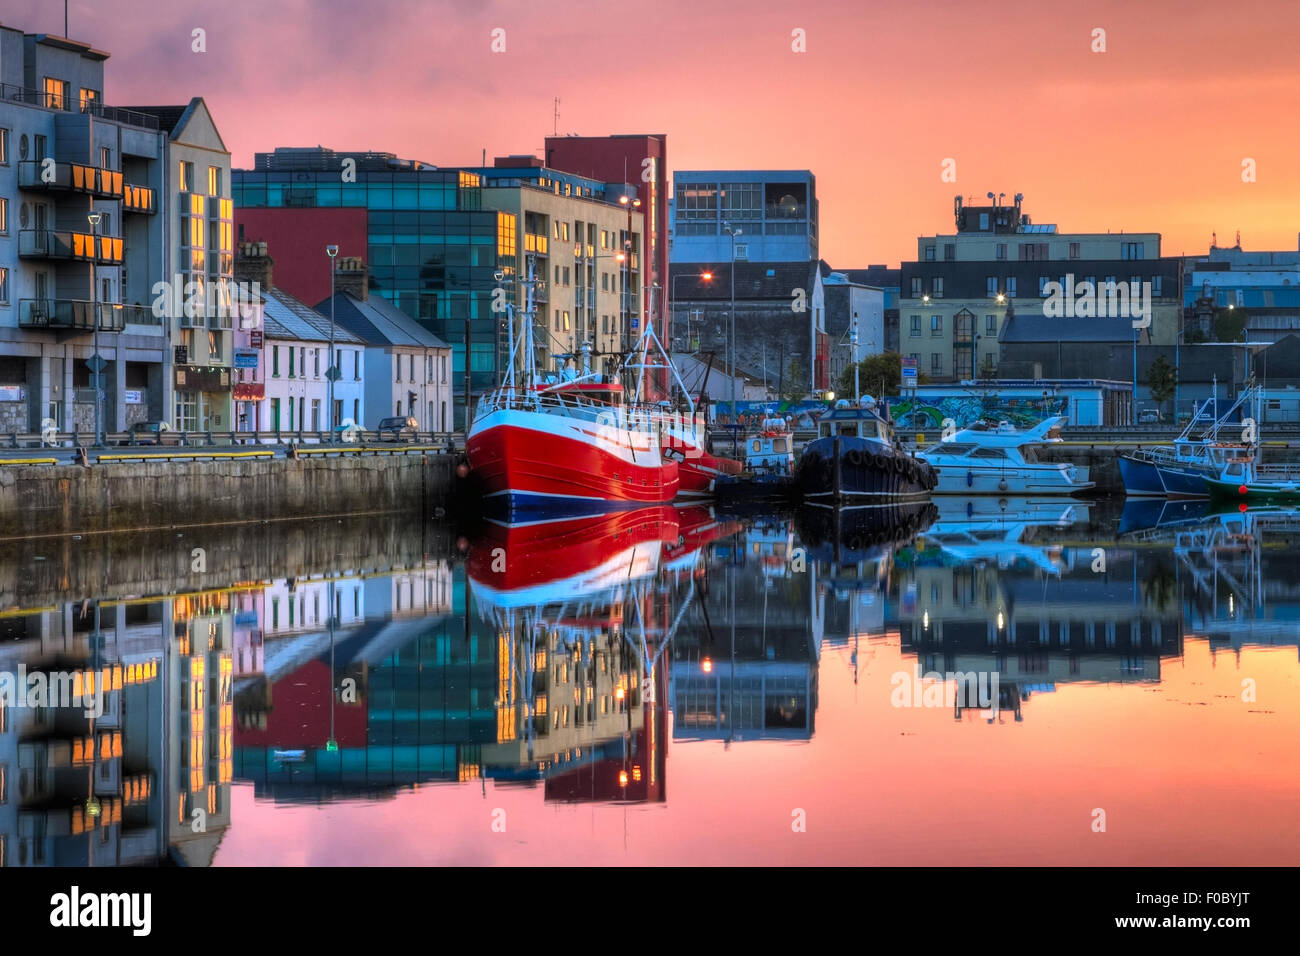 morning view on row of buildings and fishing boats in Galway Dock with sky reflected in the water, HDR image - Stock Image